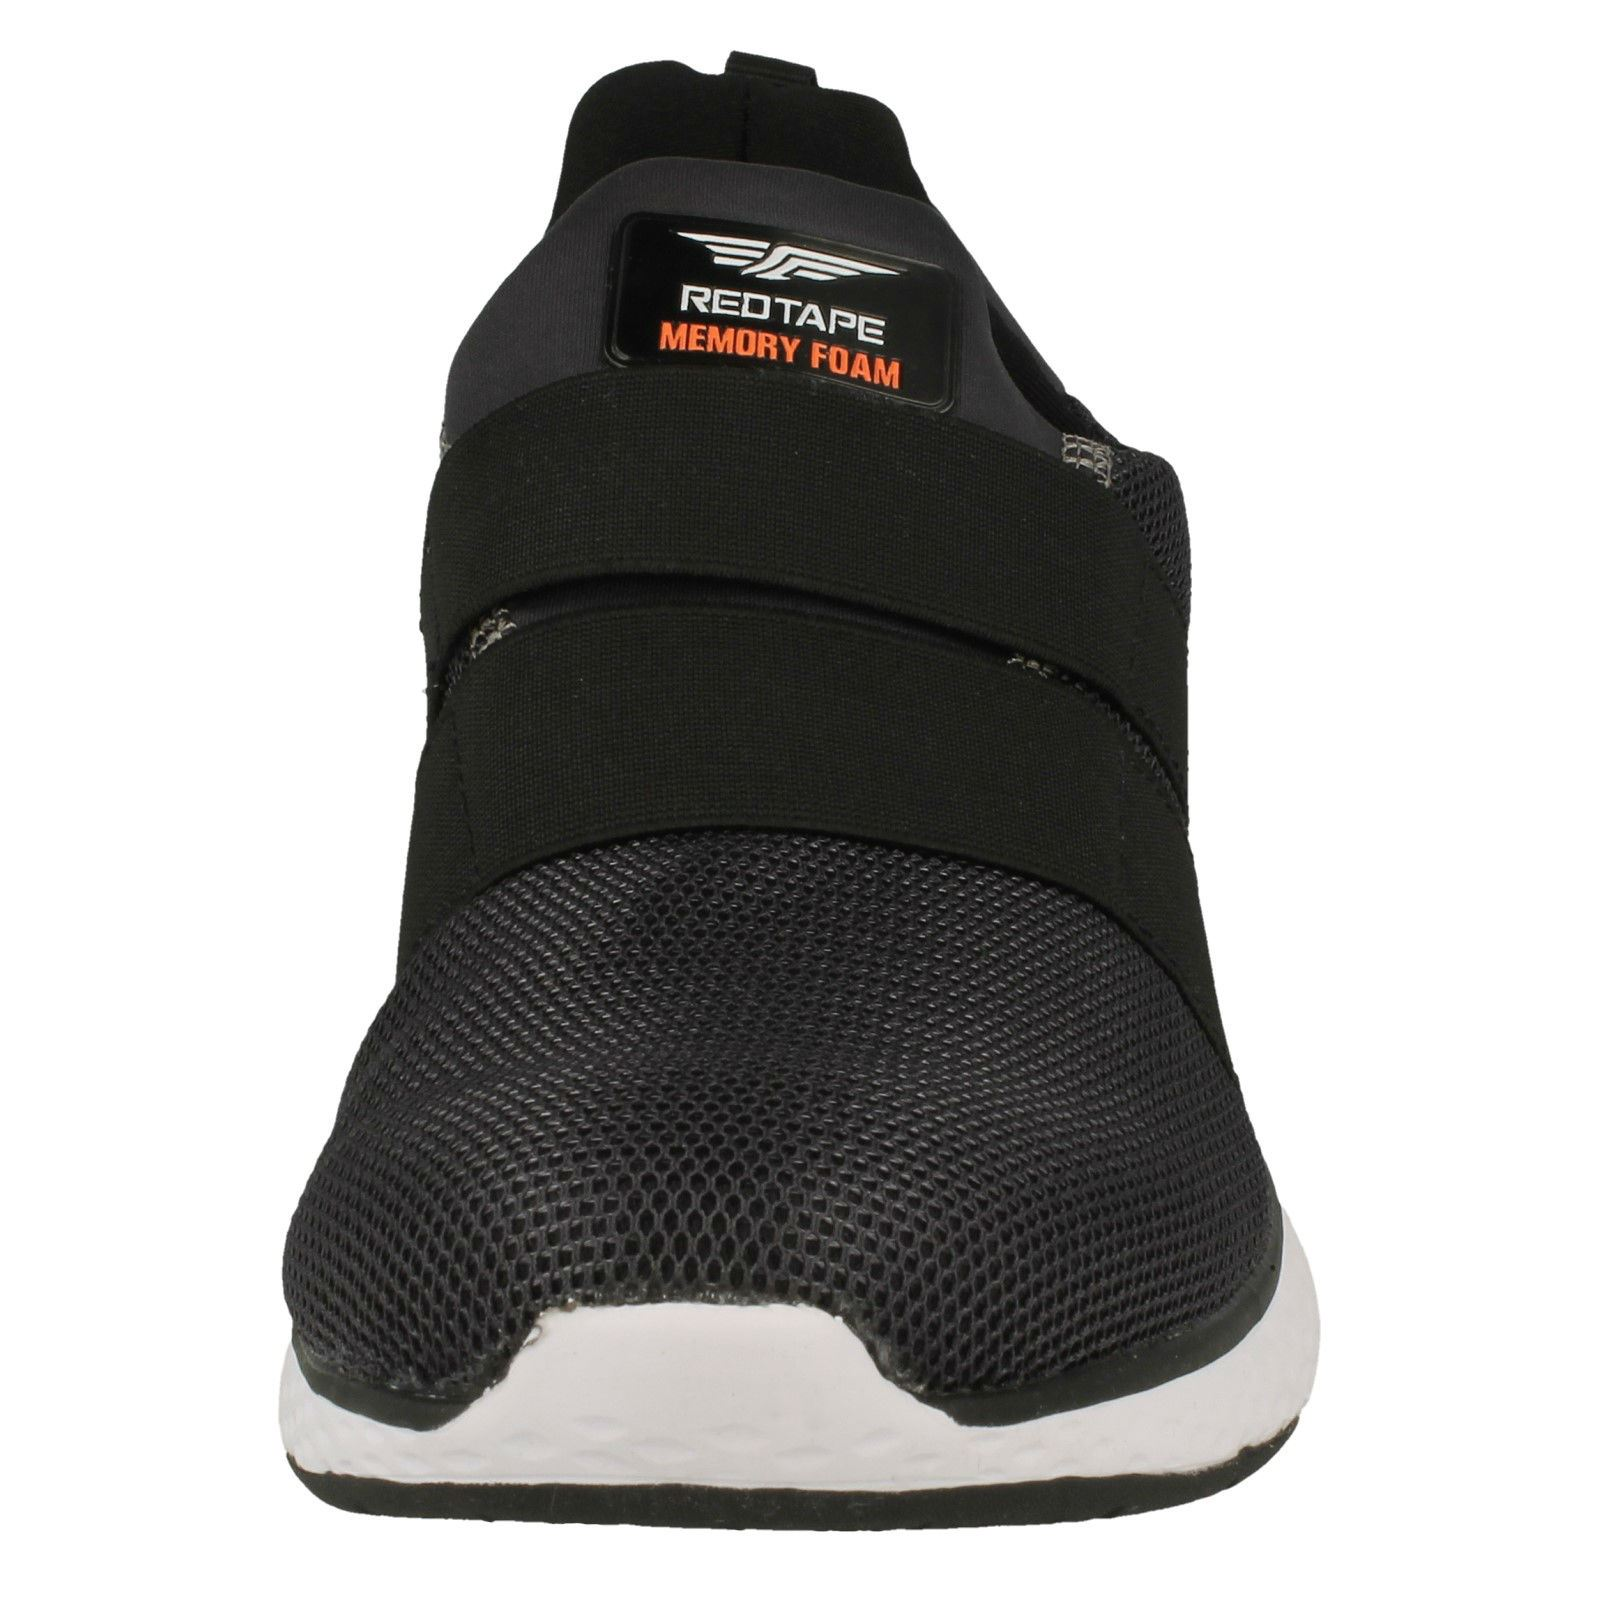 MENS RED TAPE RSC0061 MEMORY FOAM SLIP ON COMFORT SHOES BLACK SPORTS TRAINERS